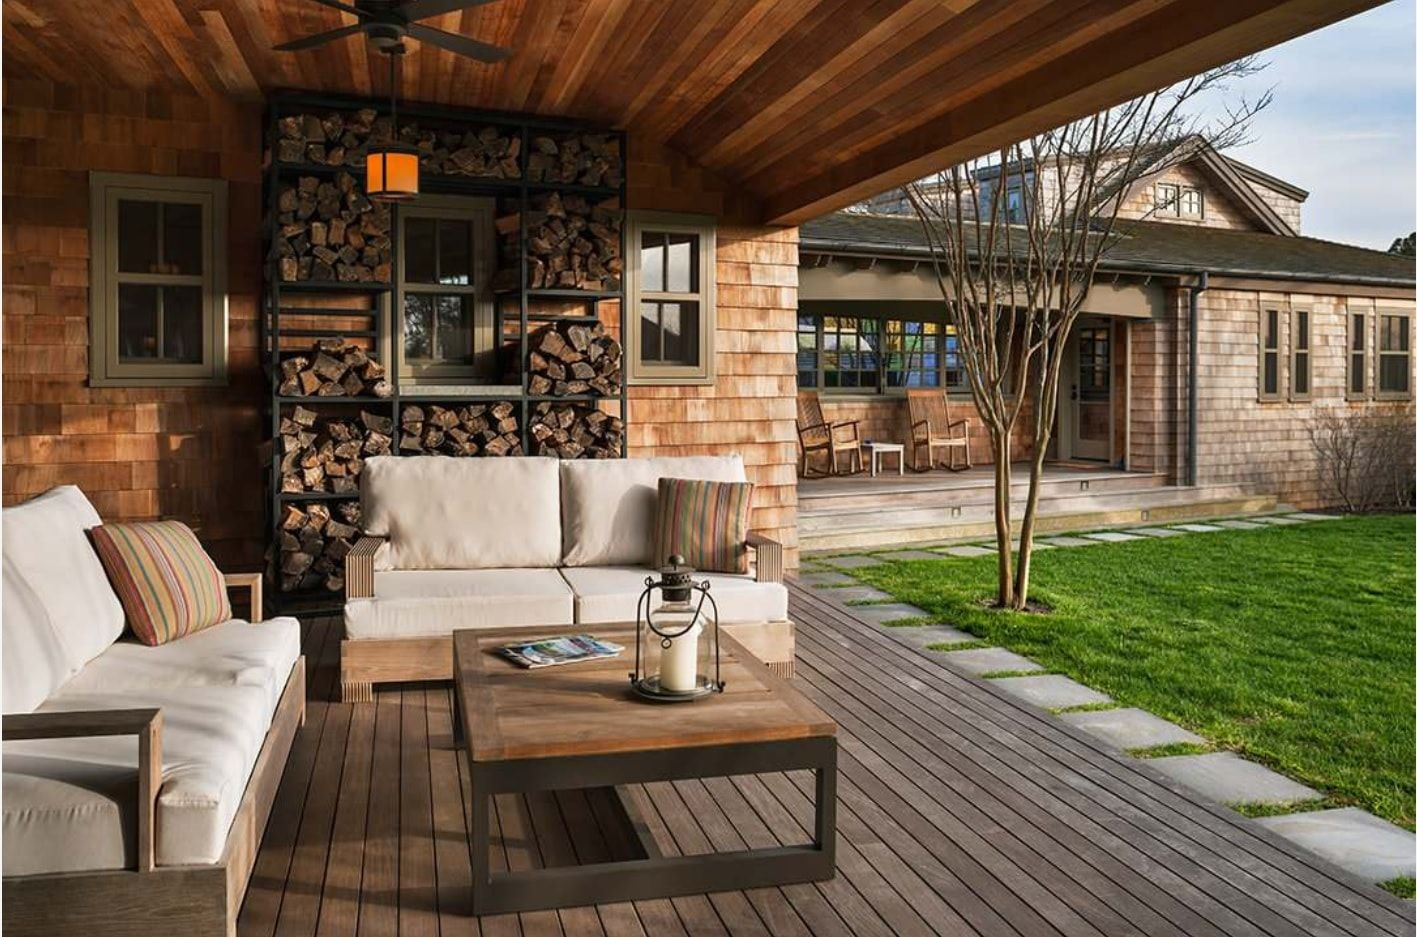 Outdoor patio zone under the shed with creative firewood racks and wooden made upholstered furniture